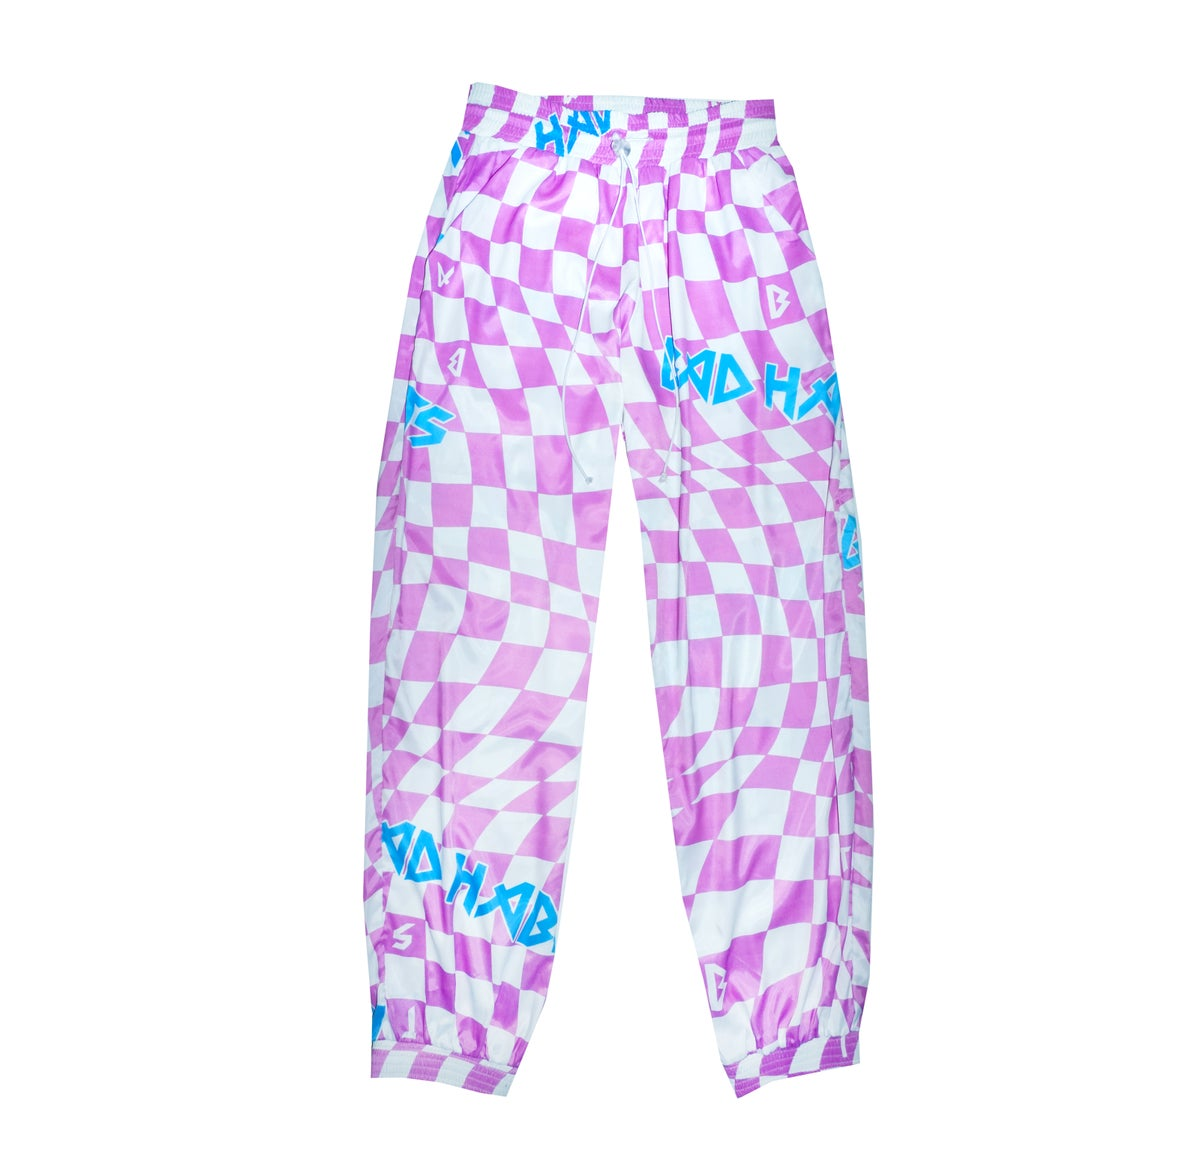 Image of Checkmate track pants - Pink